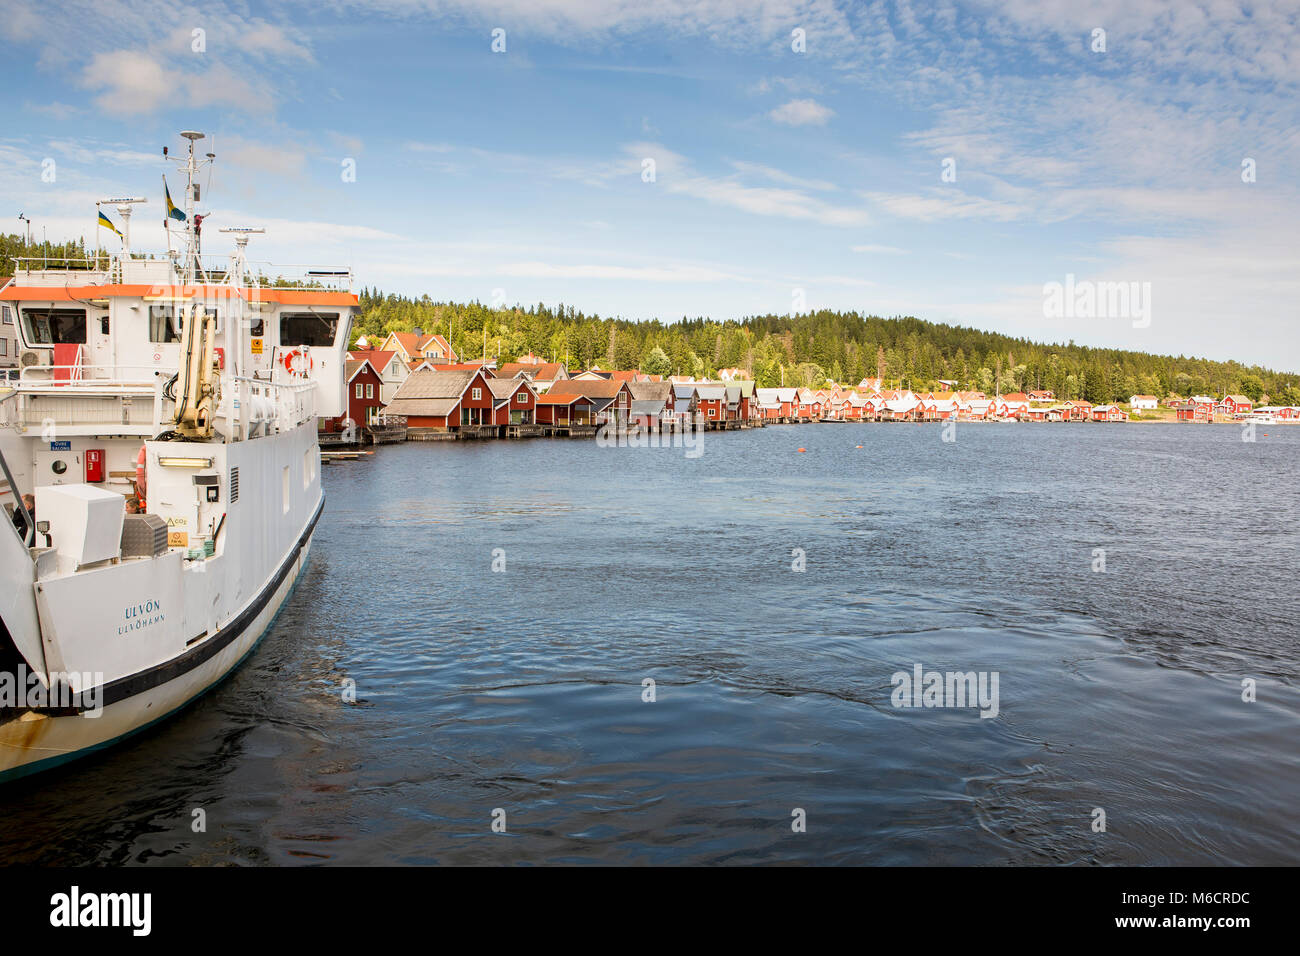 The harbour of Ulvon, Sweden, where small, red wooden houses are built at the waterline. - Stock Image